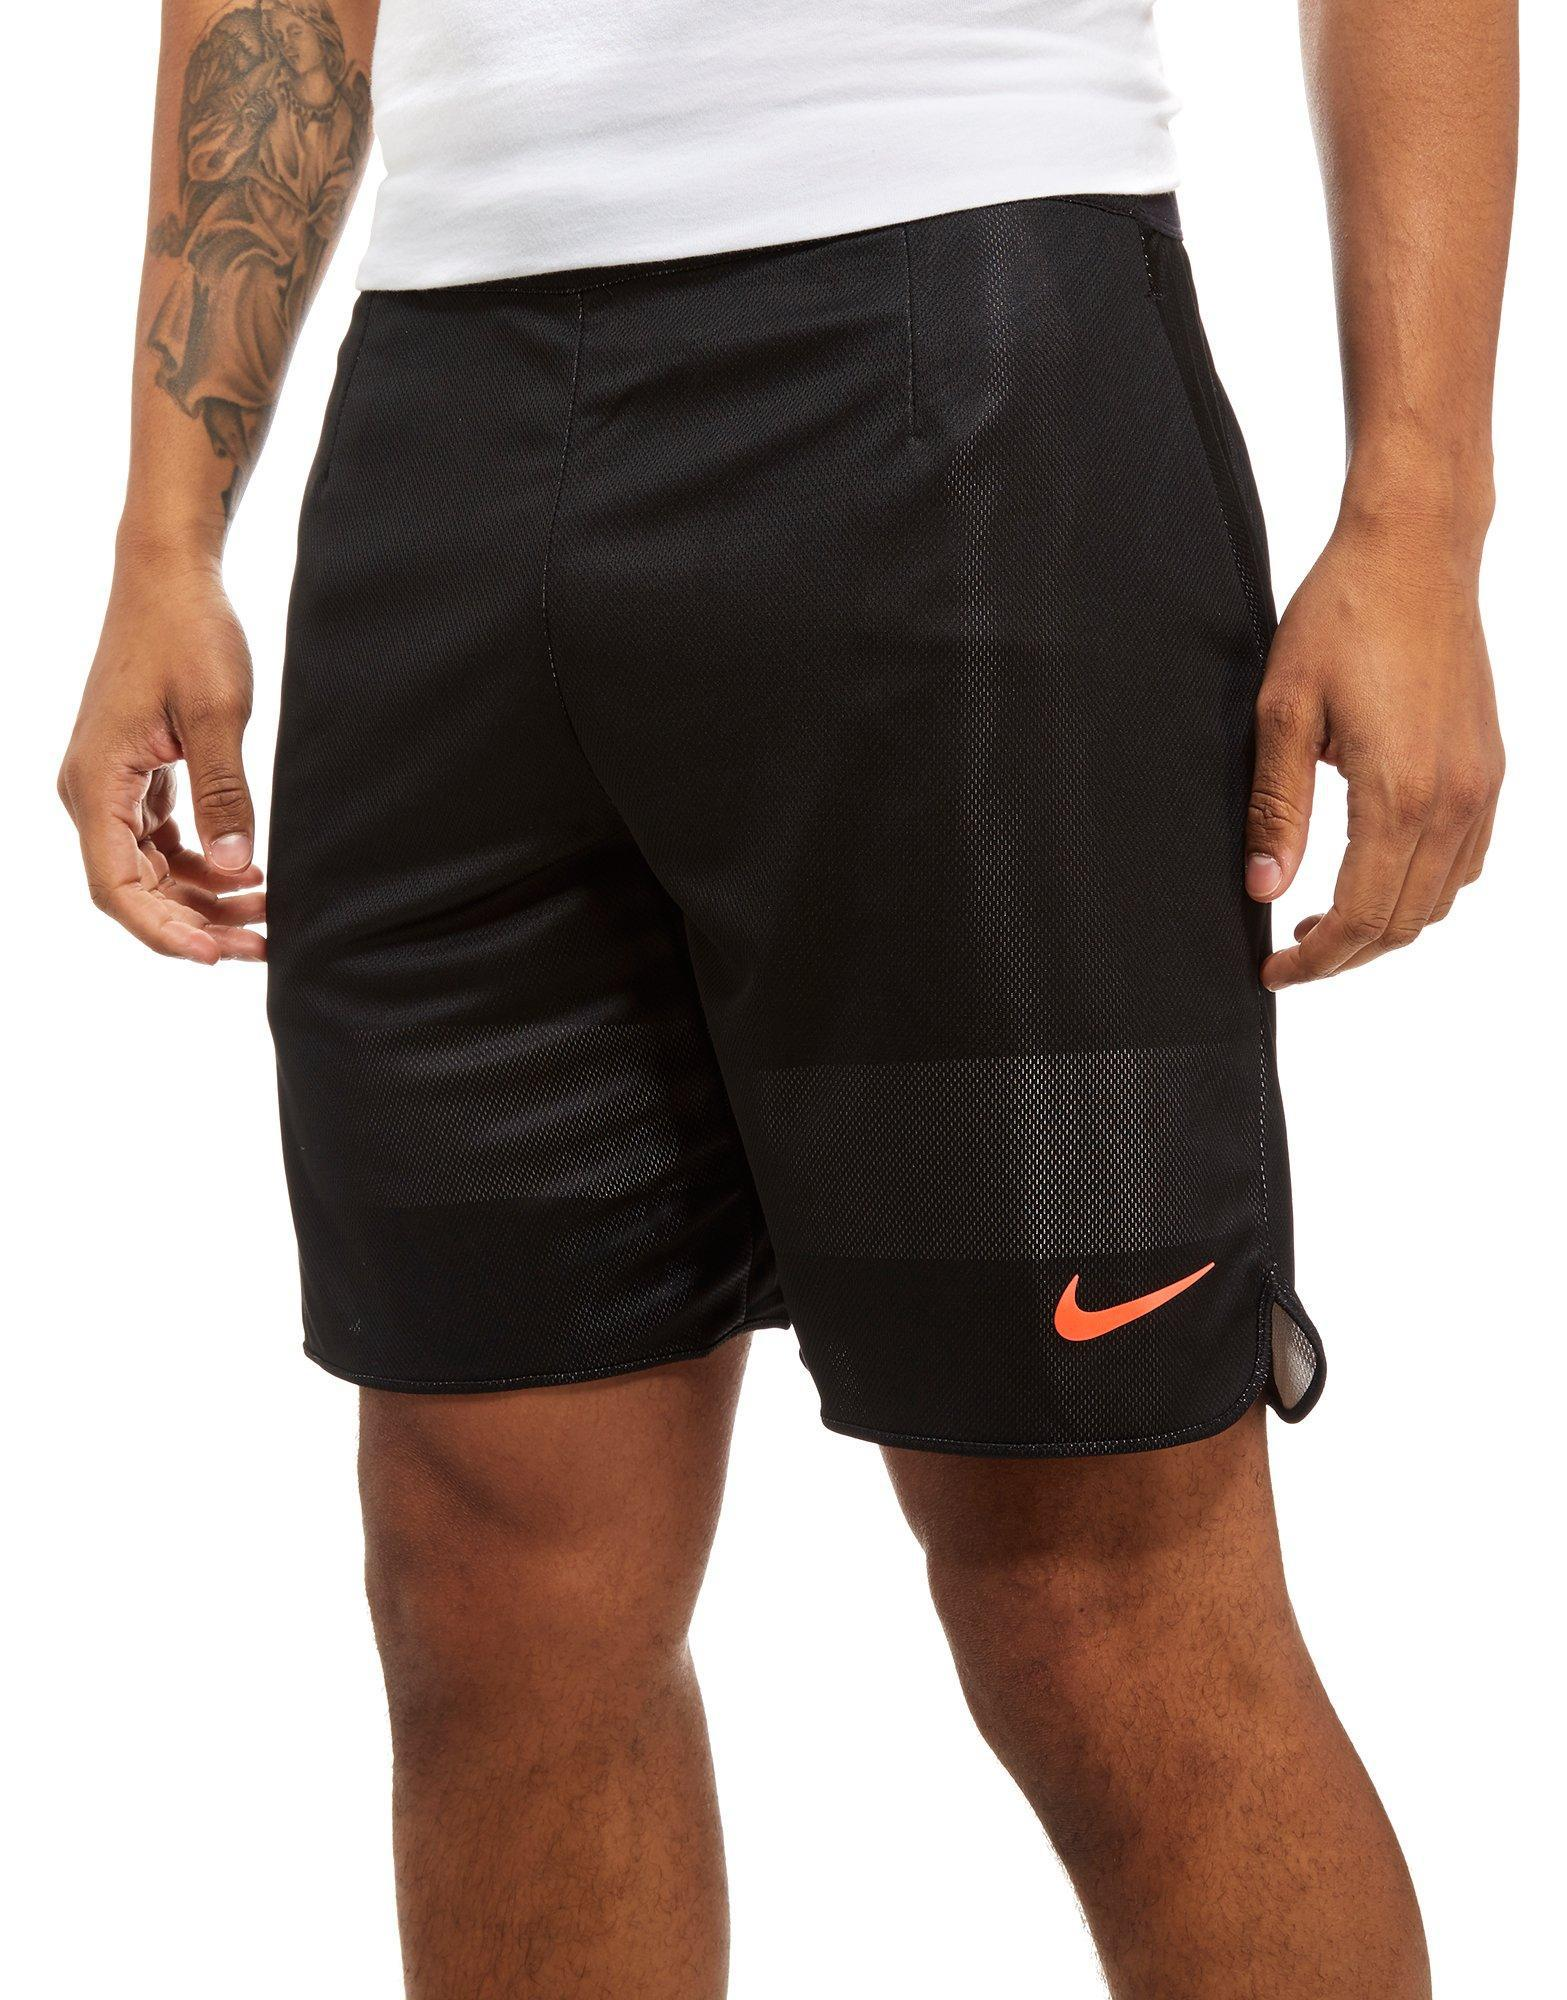 Nike Ace Tennis Shorts in Black for Men - Lyst